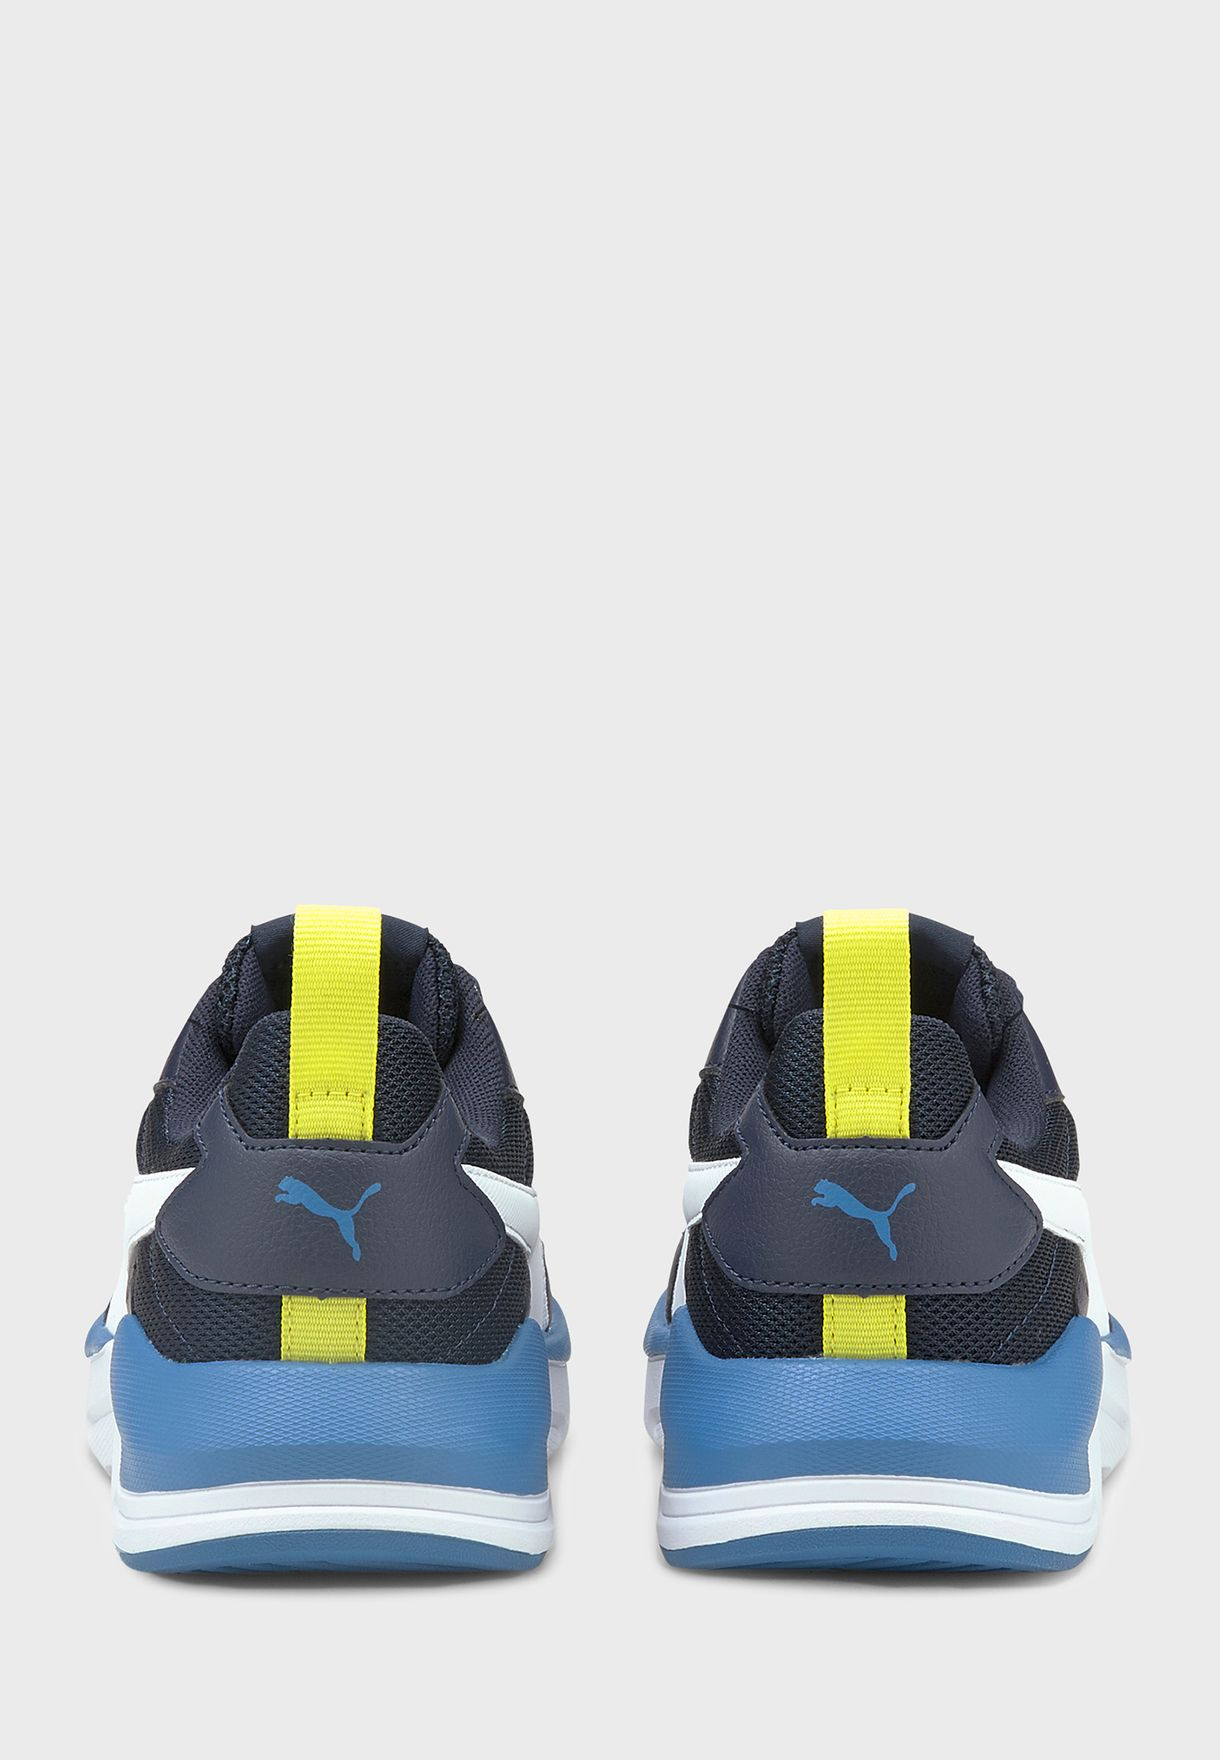 X-Ray kids shoes